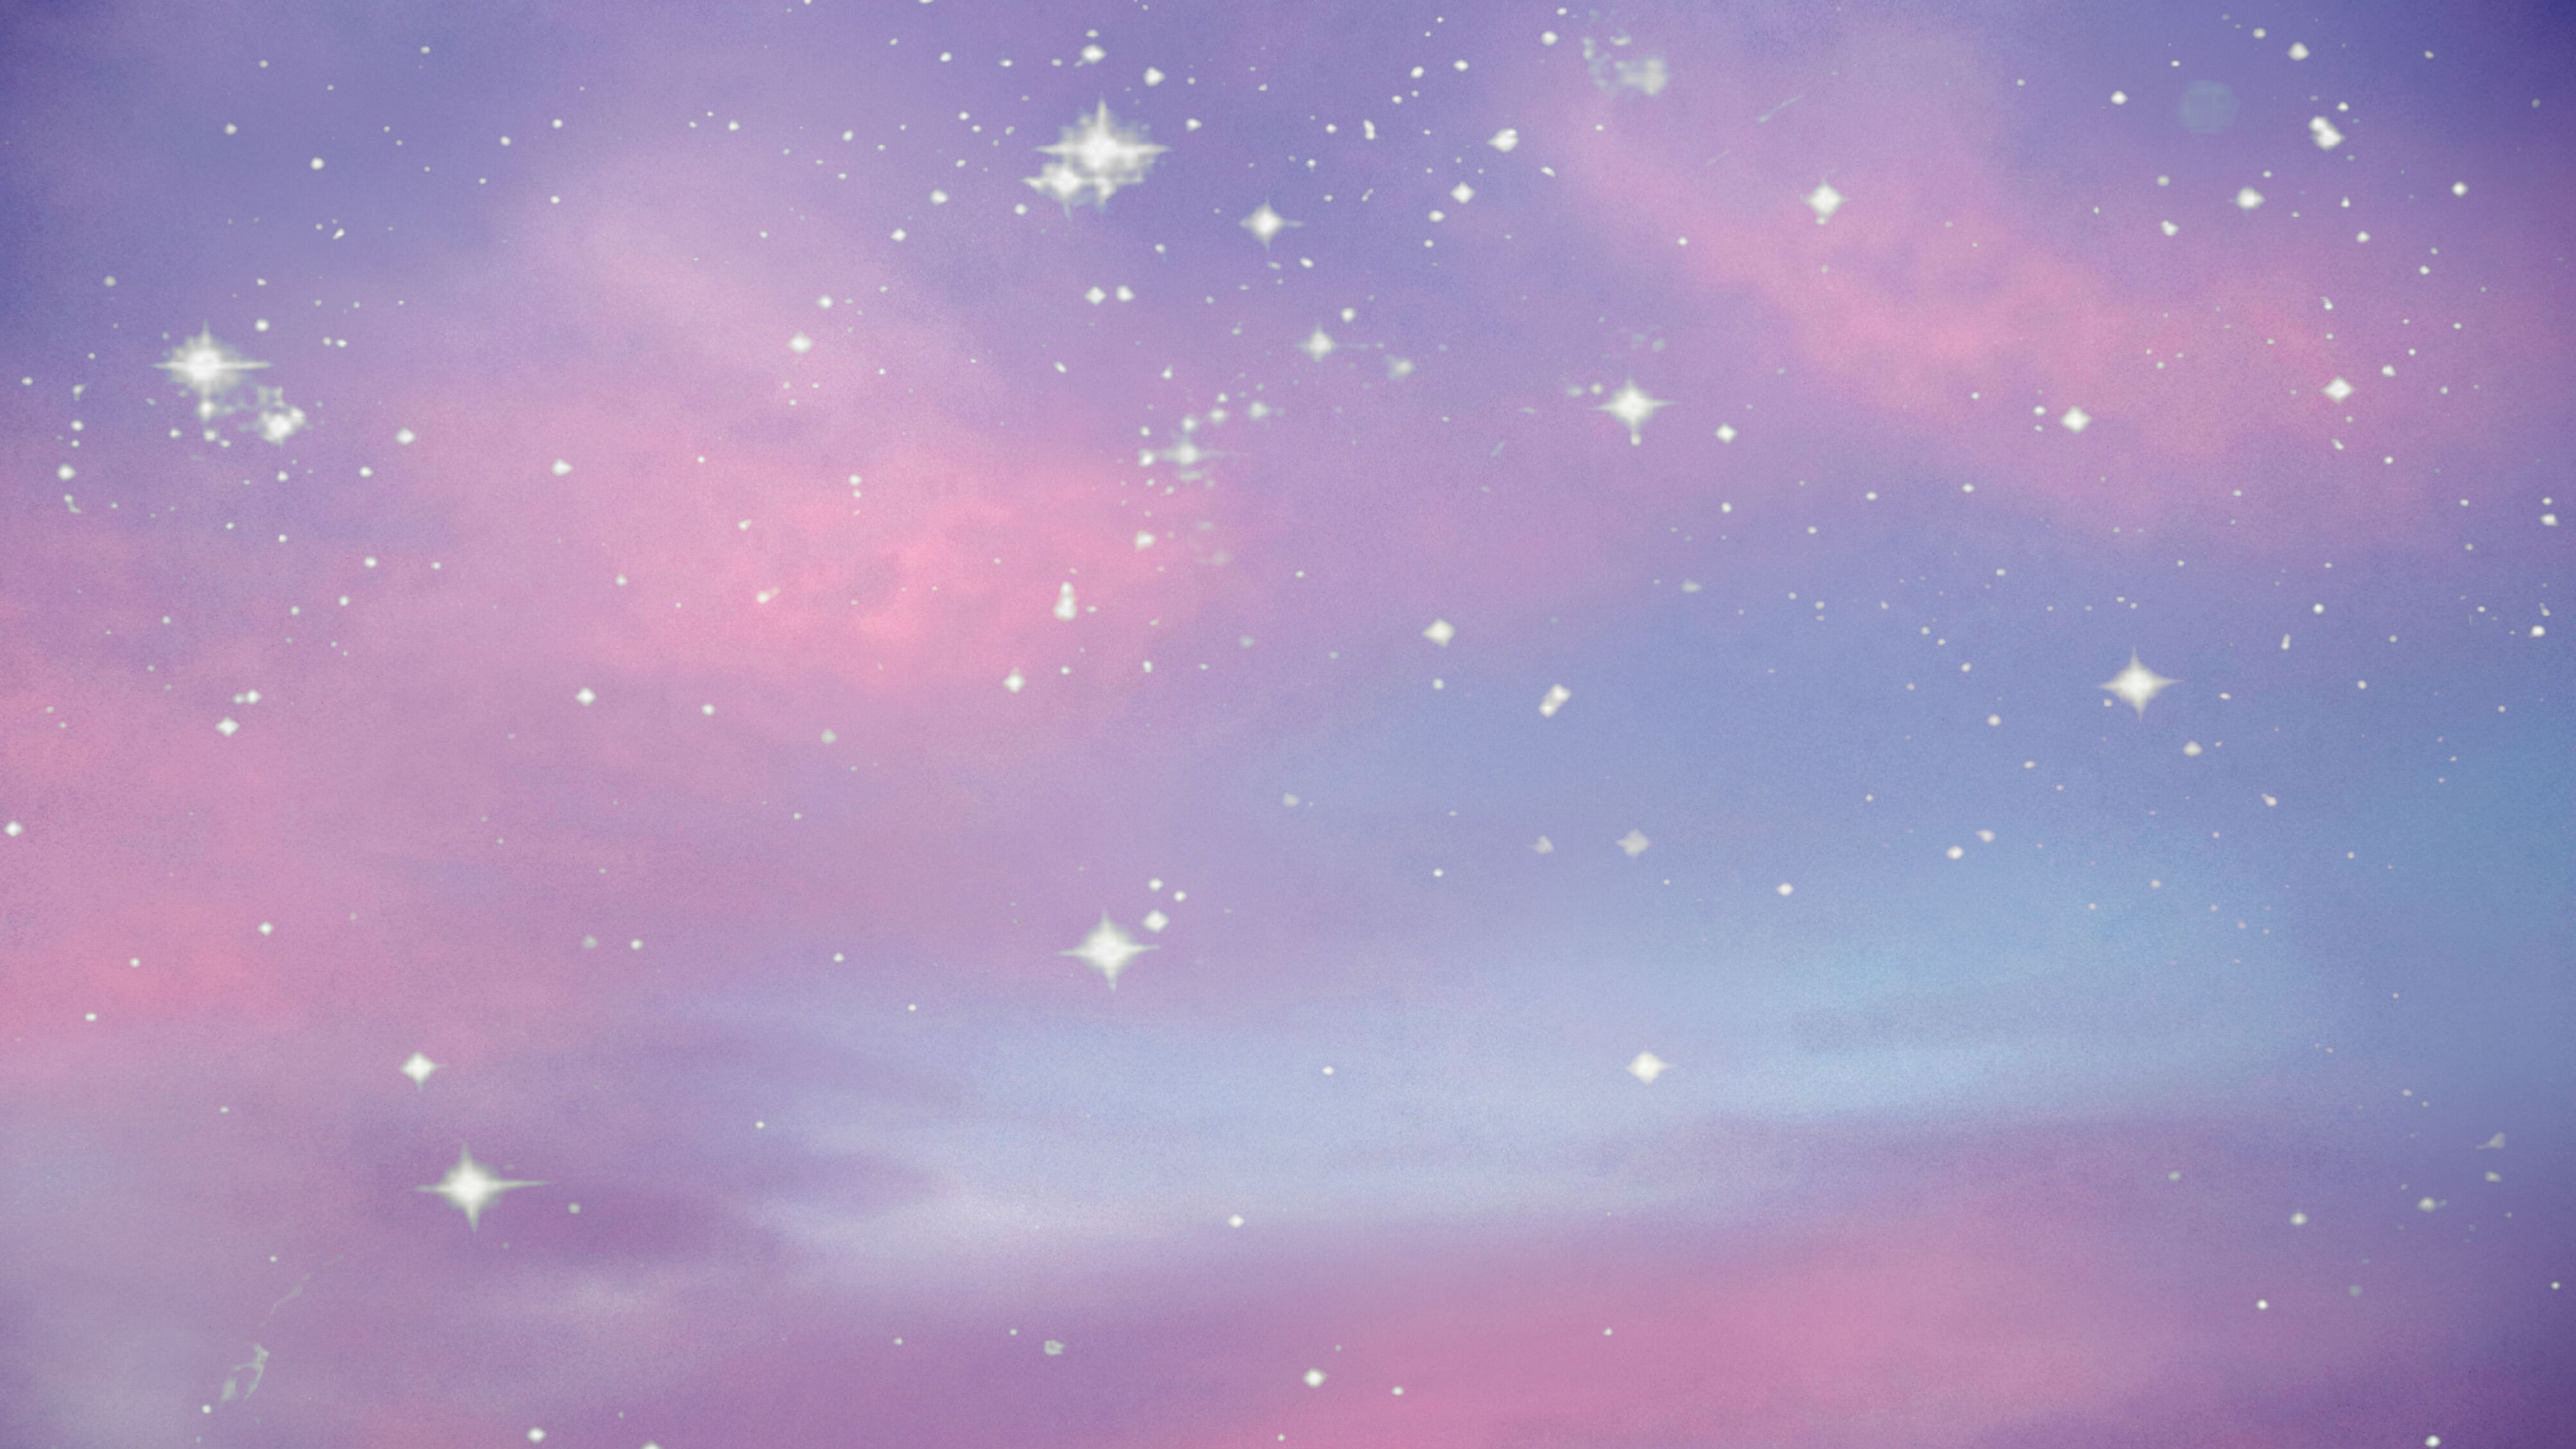 4000x2250 Magical clouds | Earth & Space in 2019 | Aesthetic ...